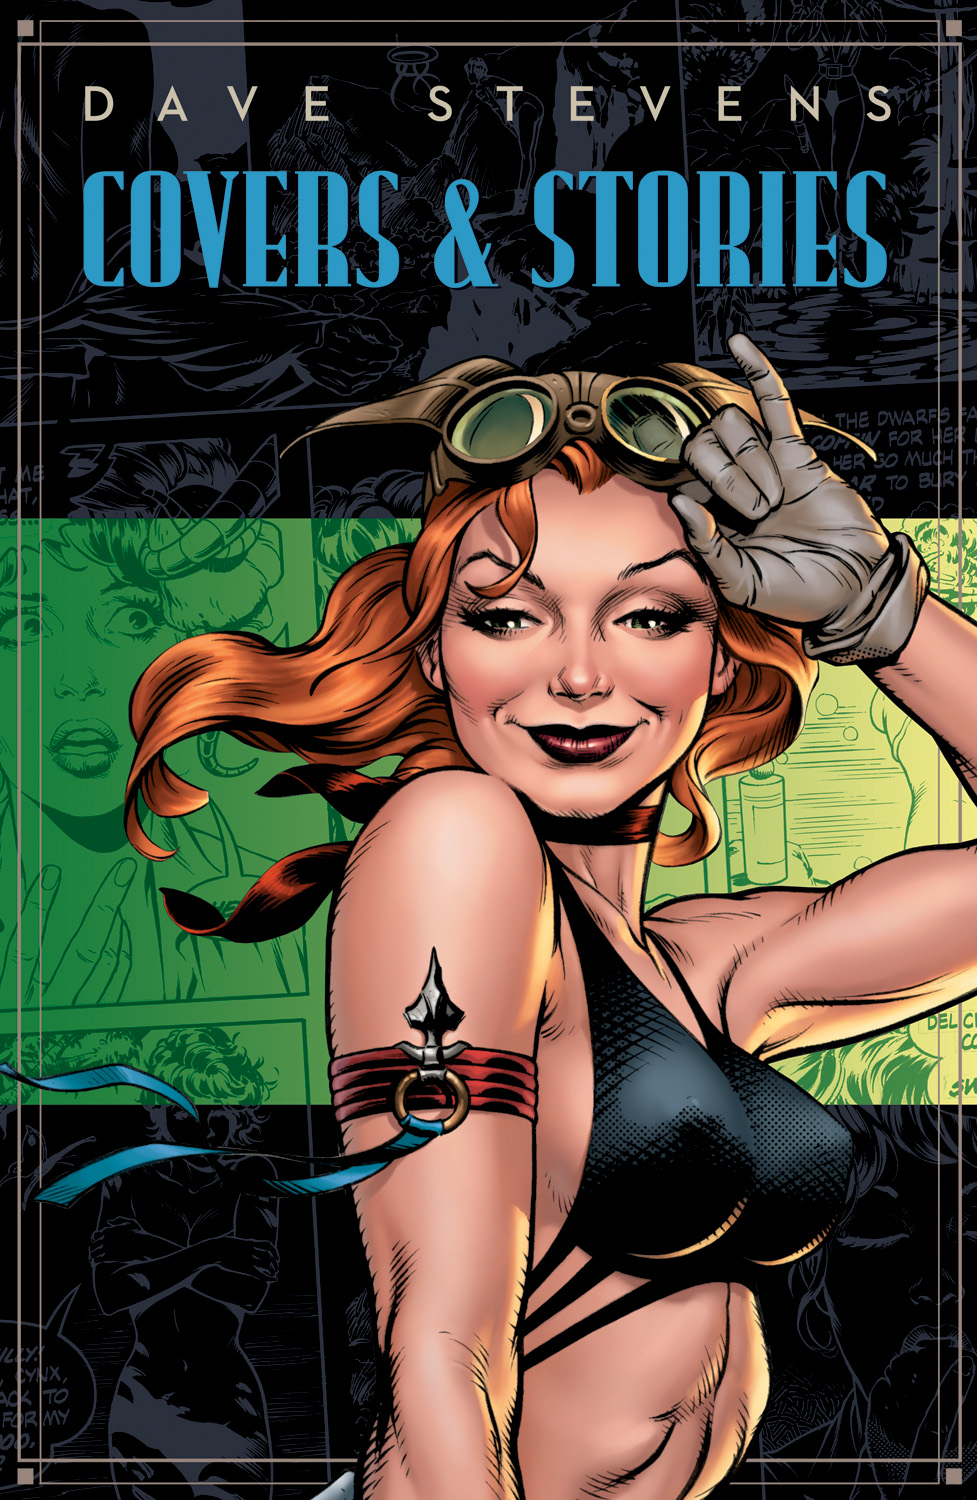 Dave Stevens Covers & Stories